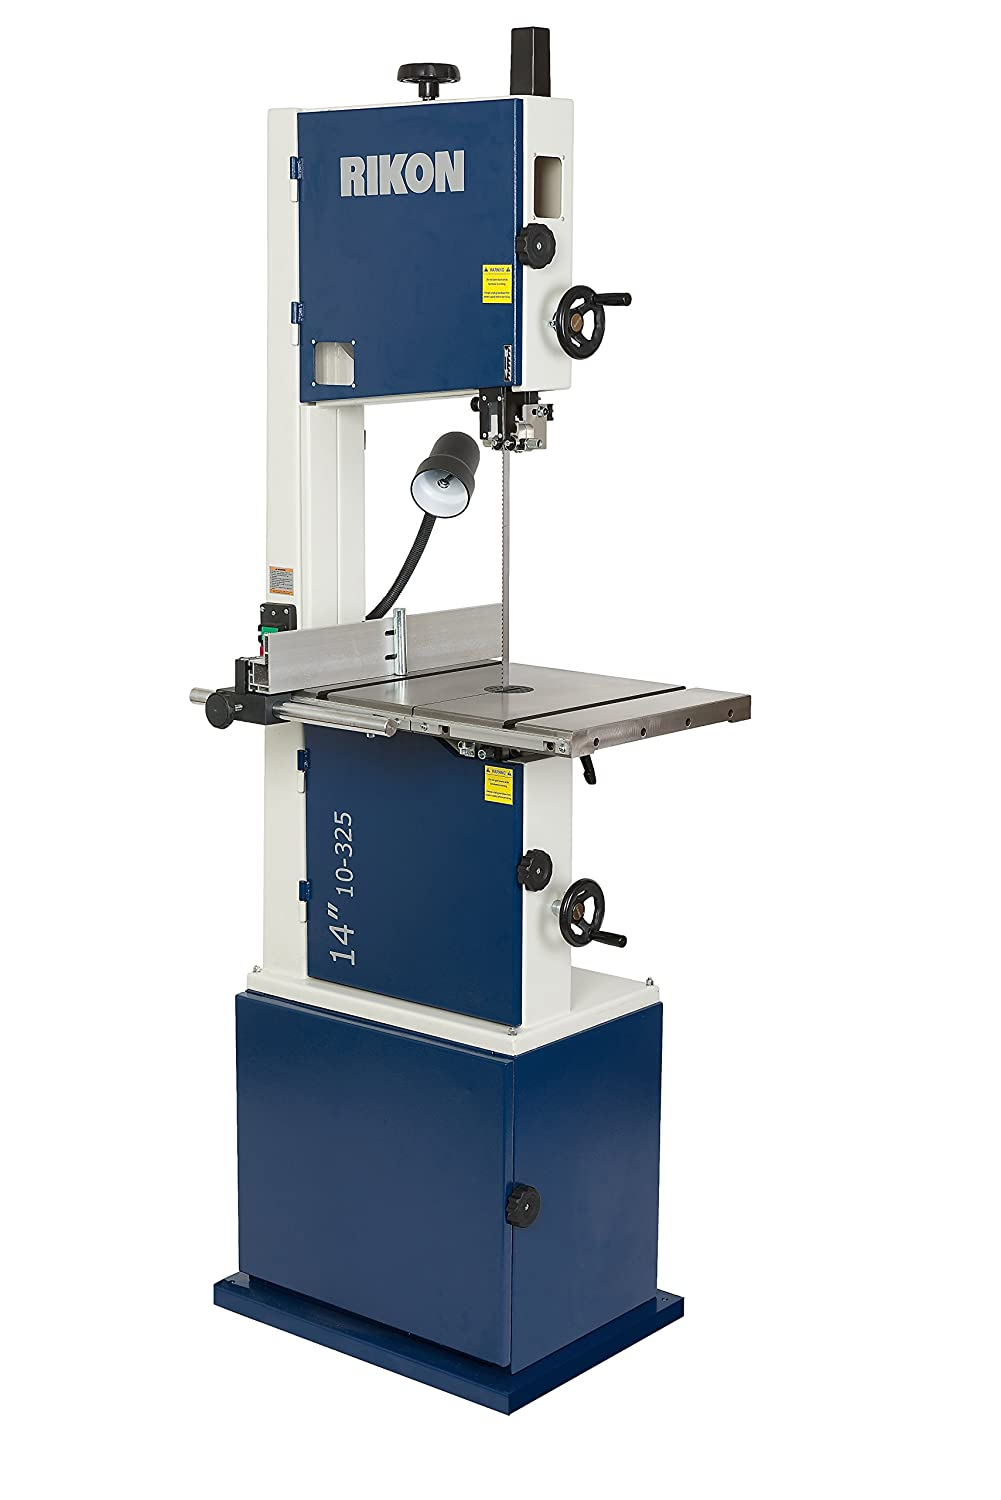 Rikon 10 325 14 inch deluxe band saw review for 10 inch table saw comparison